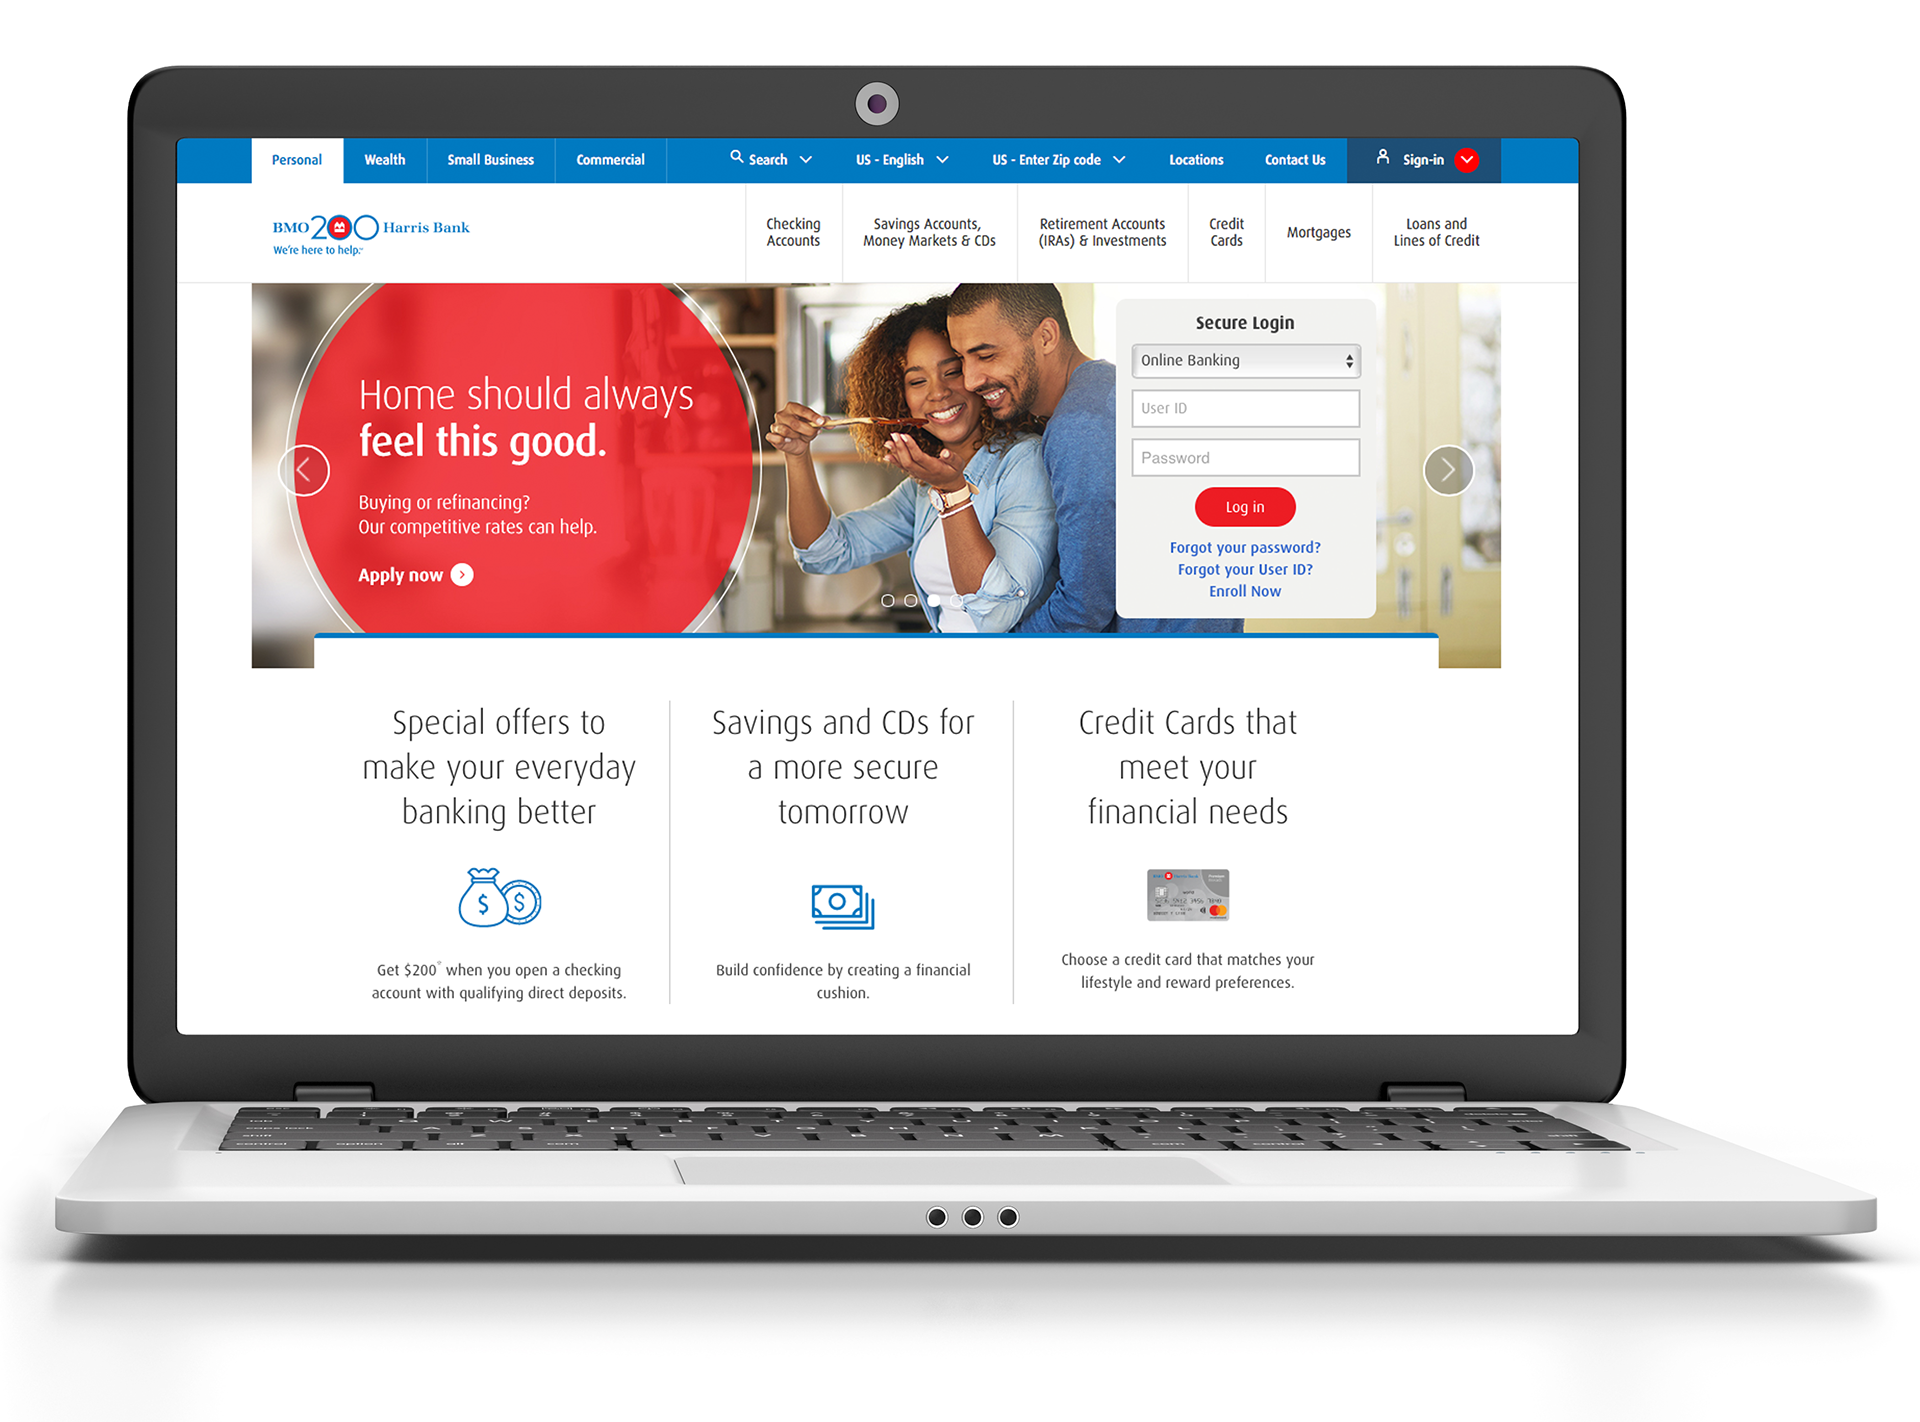 Chris rogers design bmo harris bmo harris brand experience for bank customers needing financial guidance small business mortgages and card security reheart Gallery